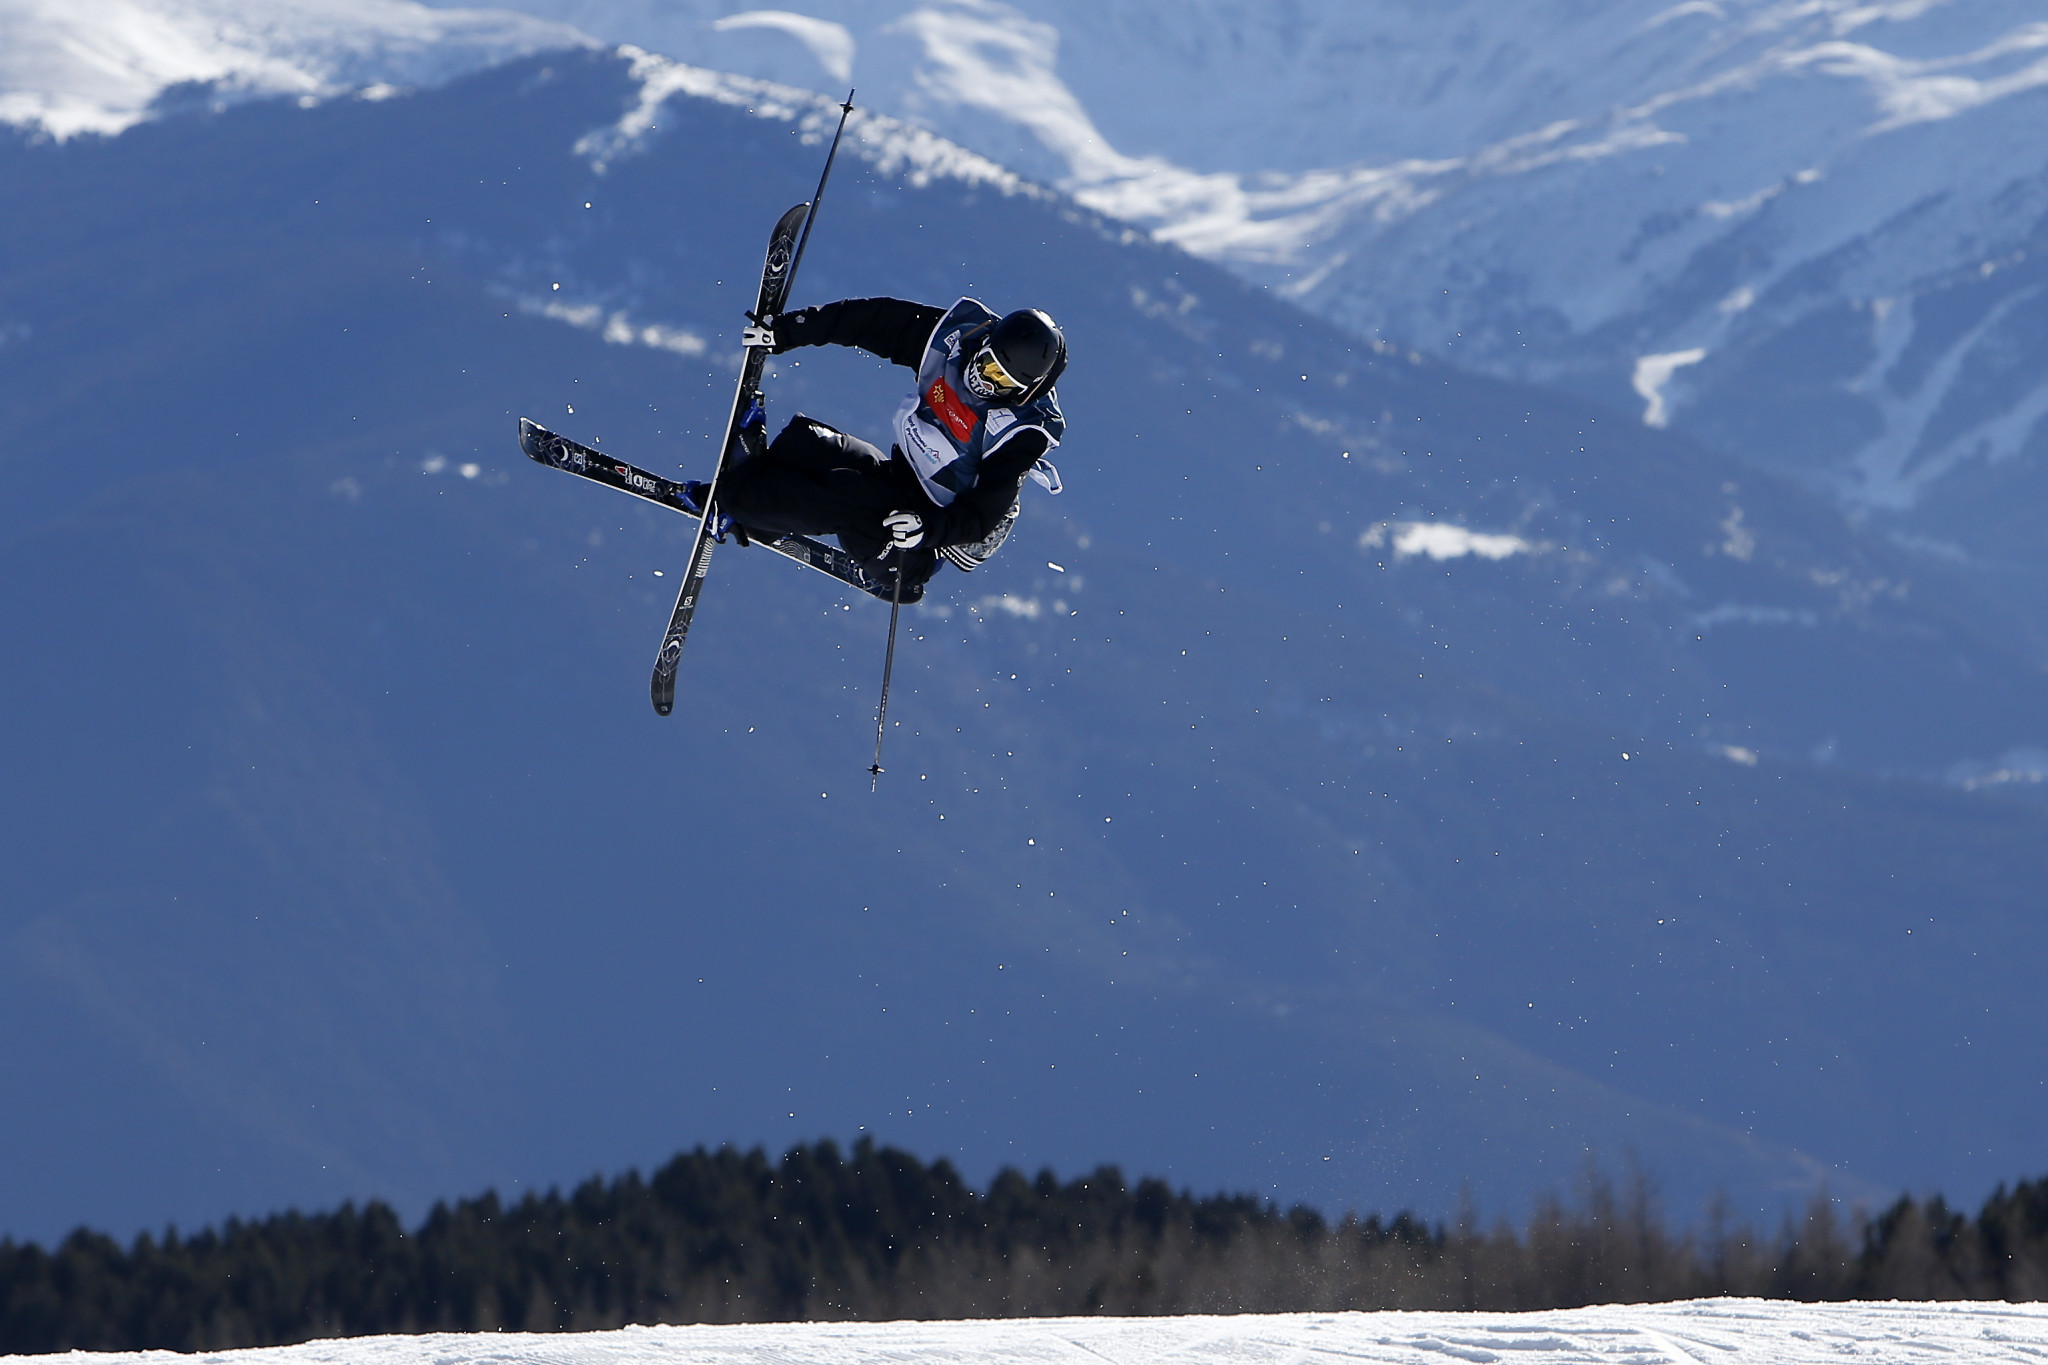 FIS Freestyle Skiing World Cup set to resume with slopestyle event in Font Romeu